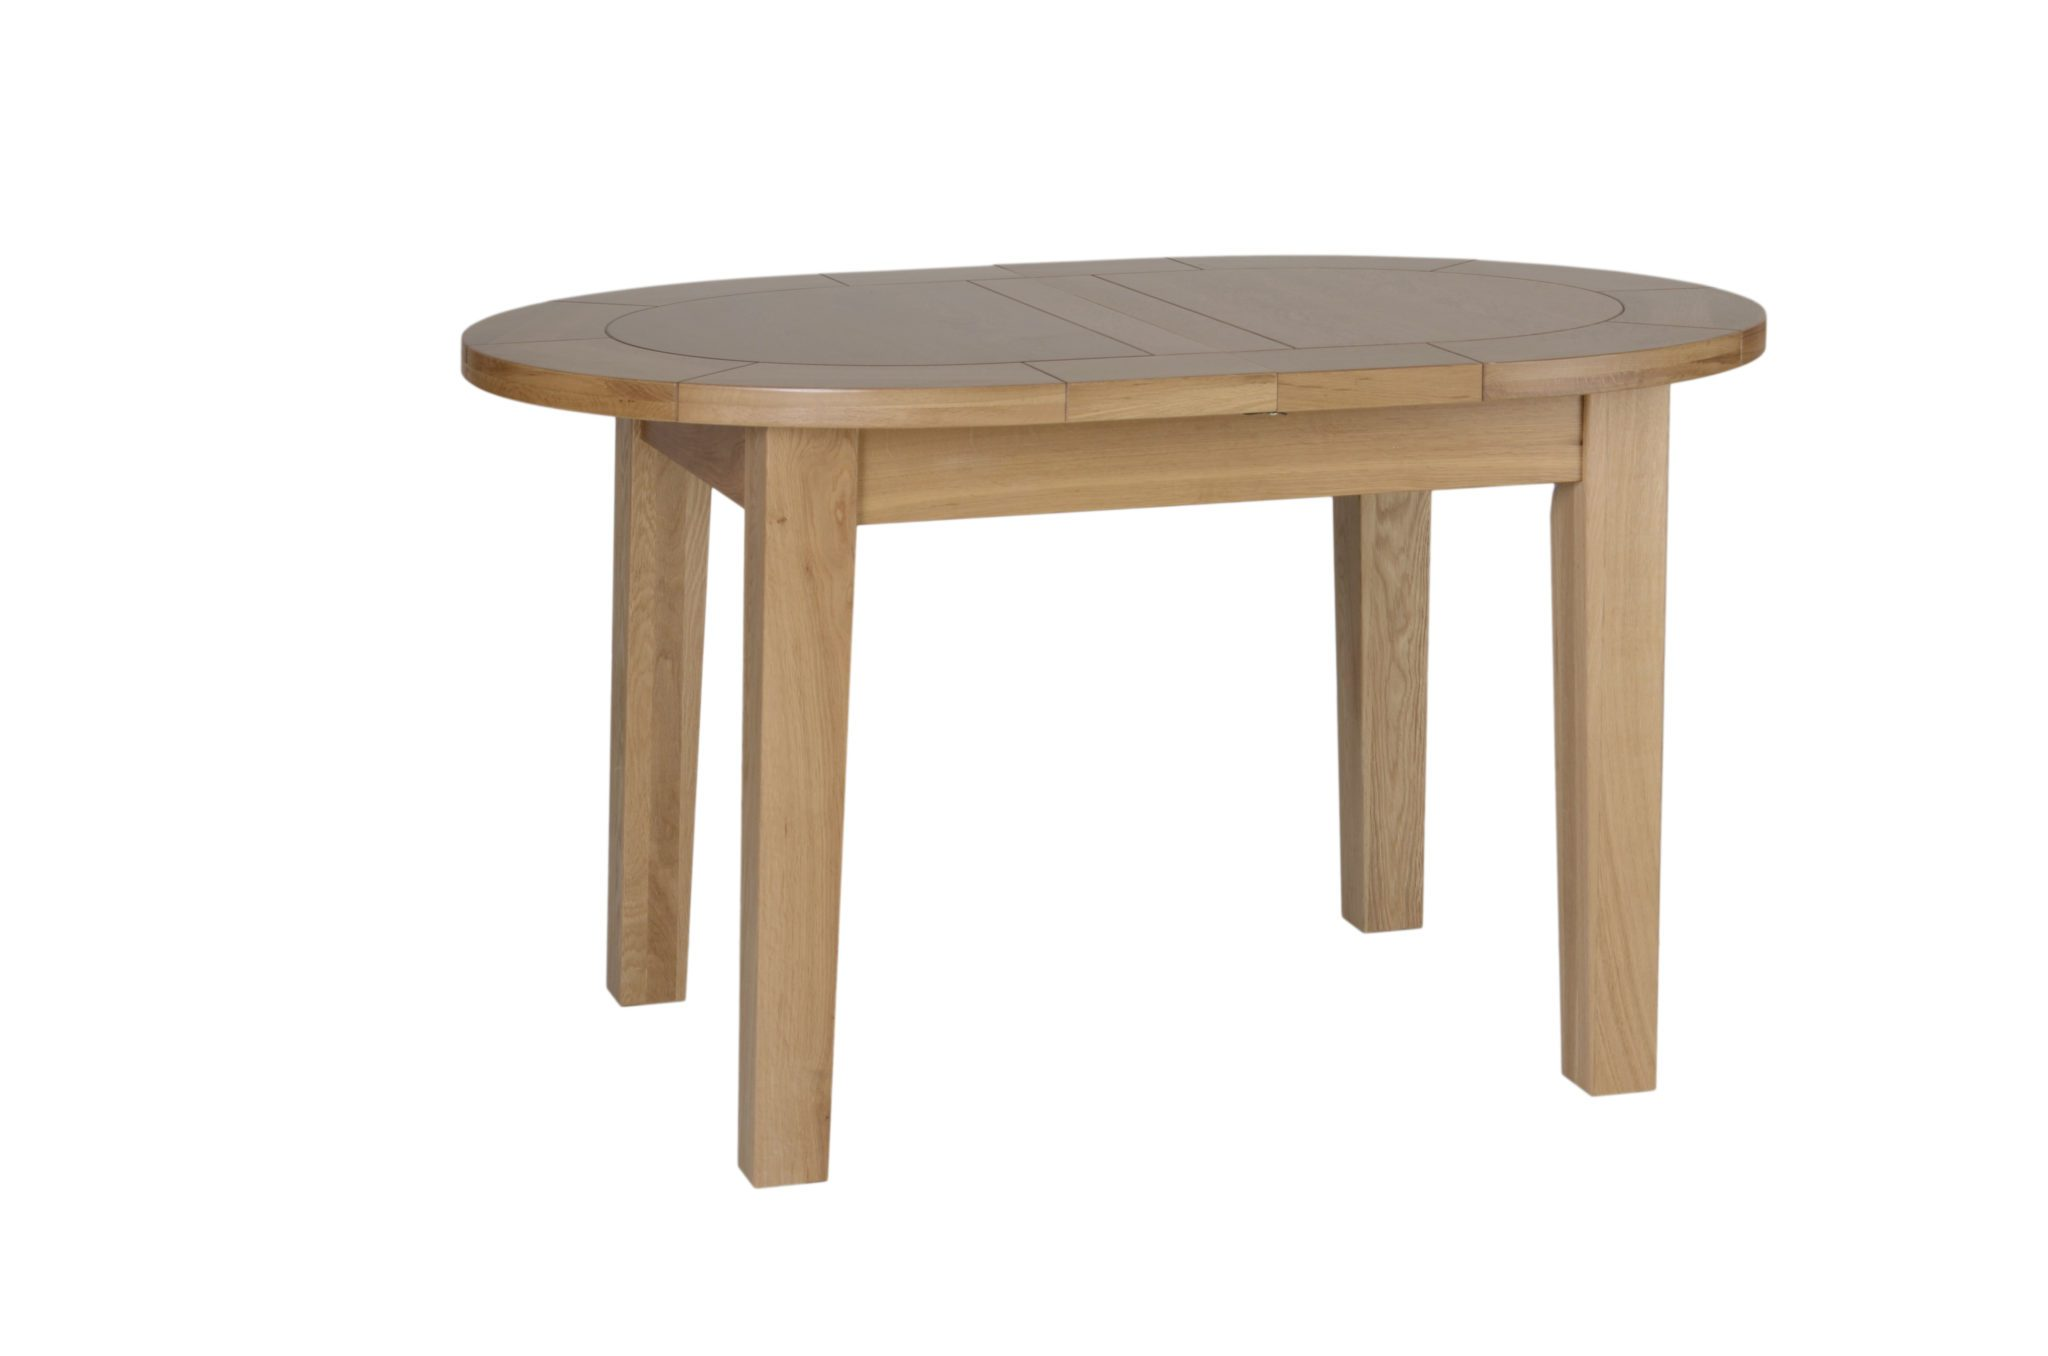 Norwich Oak Small D End Extending Dining Table. Extends from 132cm to 165cm Contemporary shaker style curved top table with extension in the middle. Seats 4. NNT01